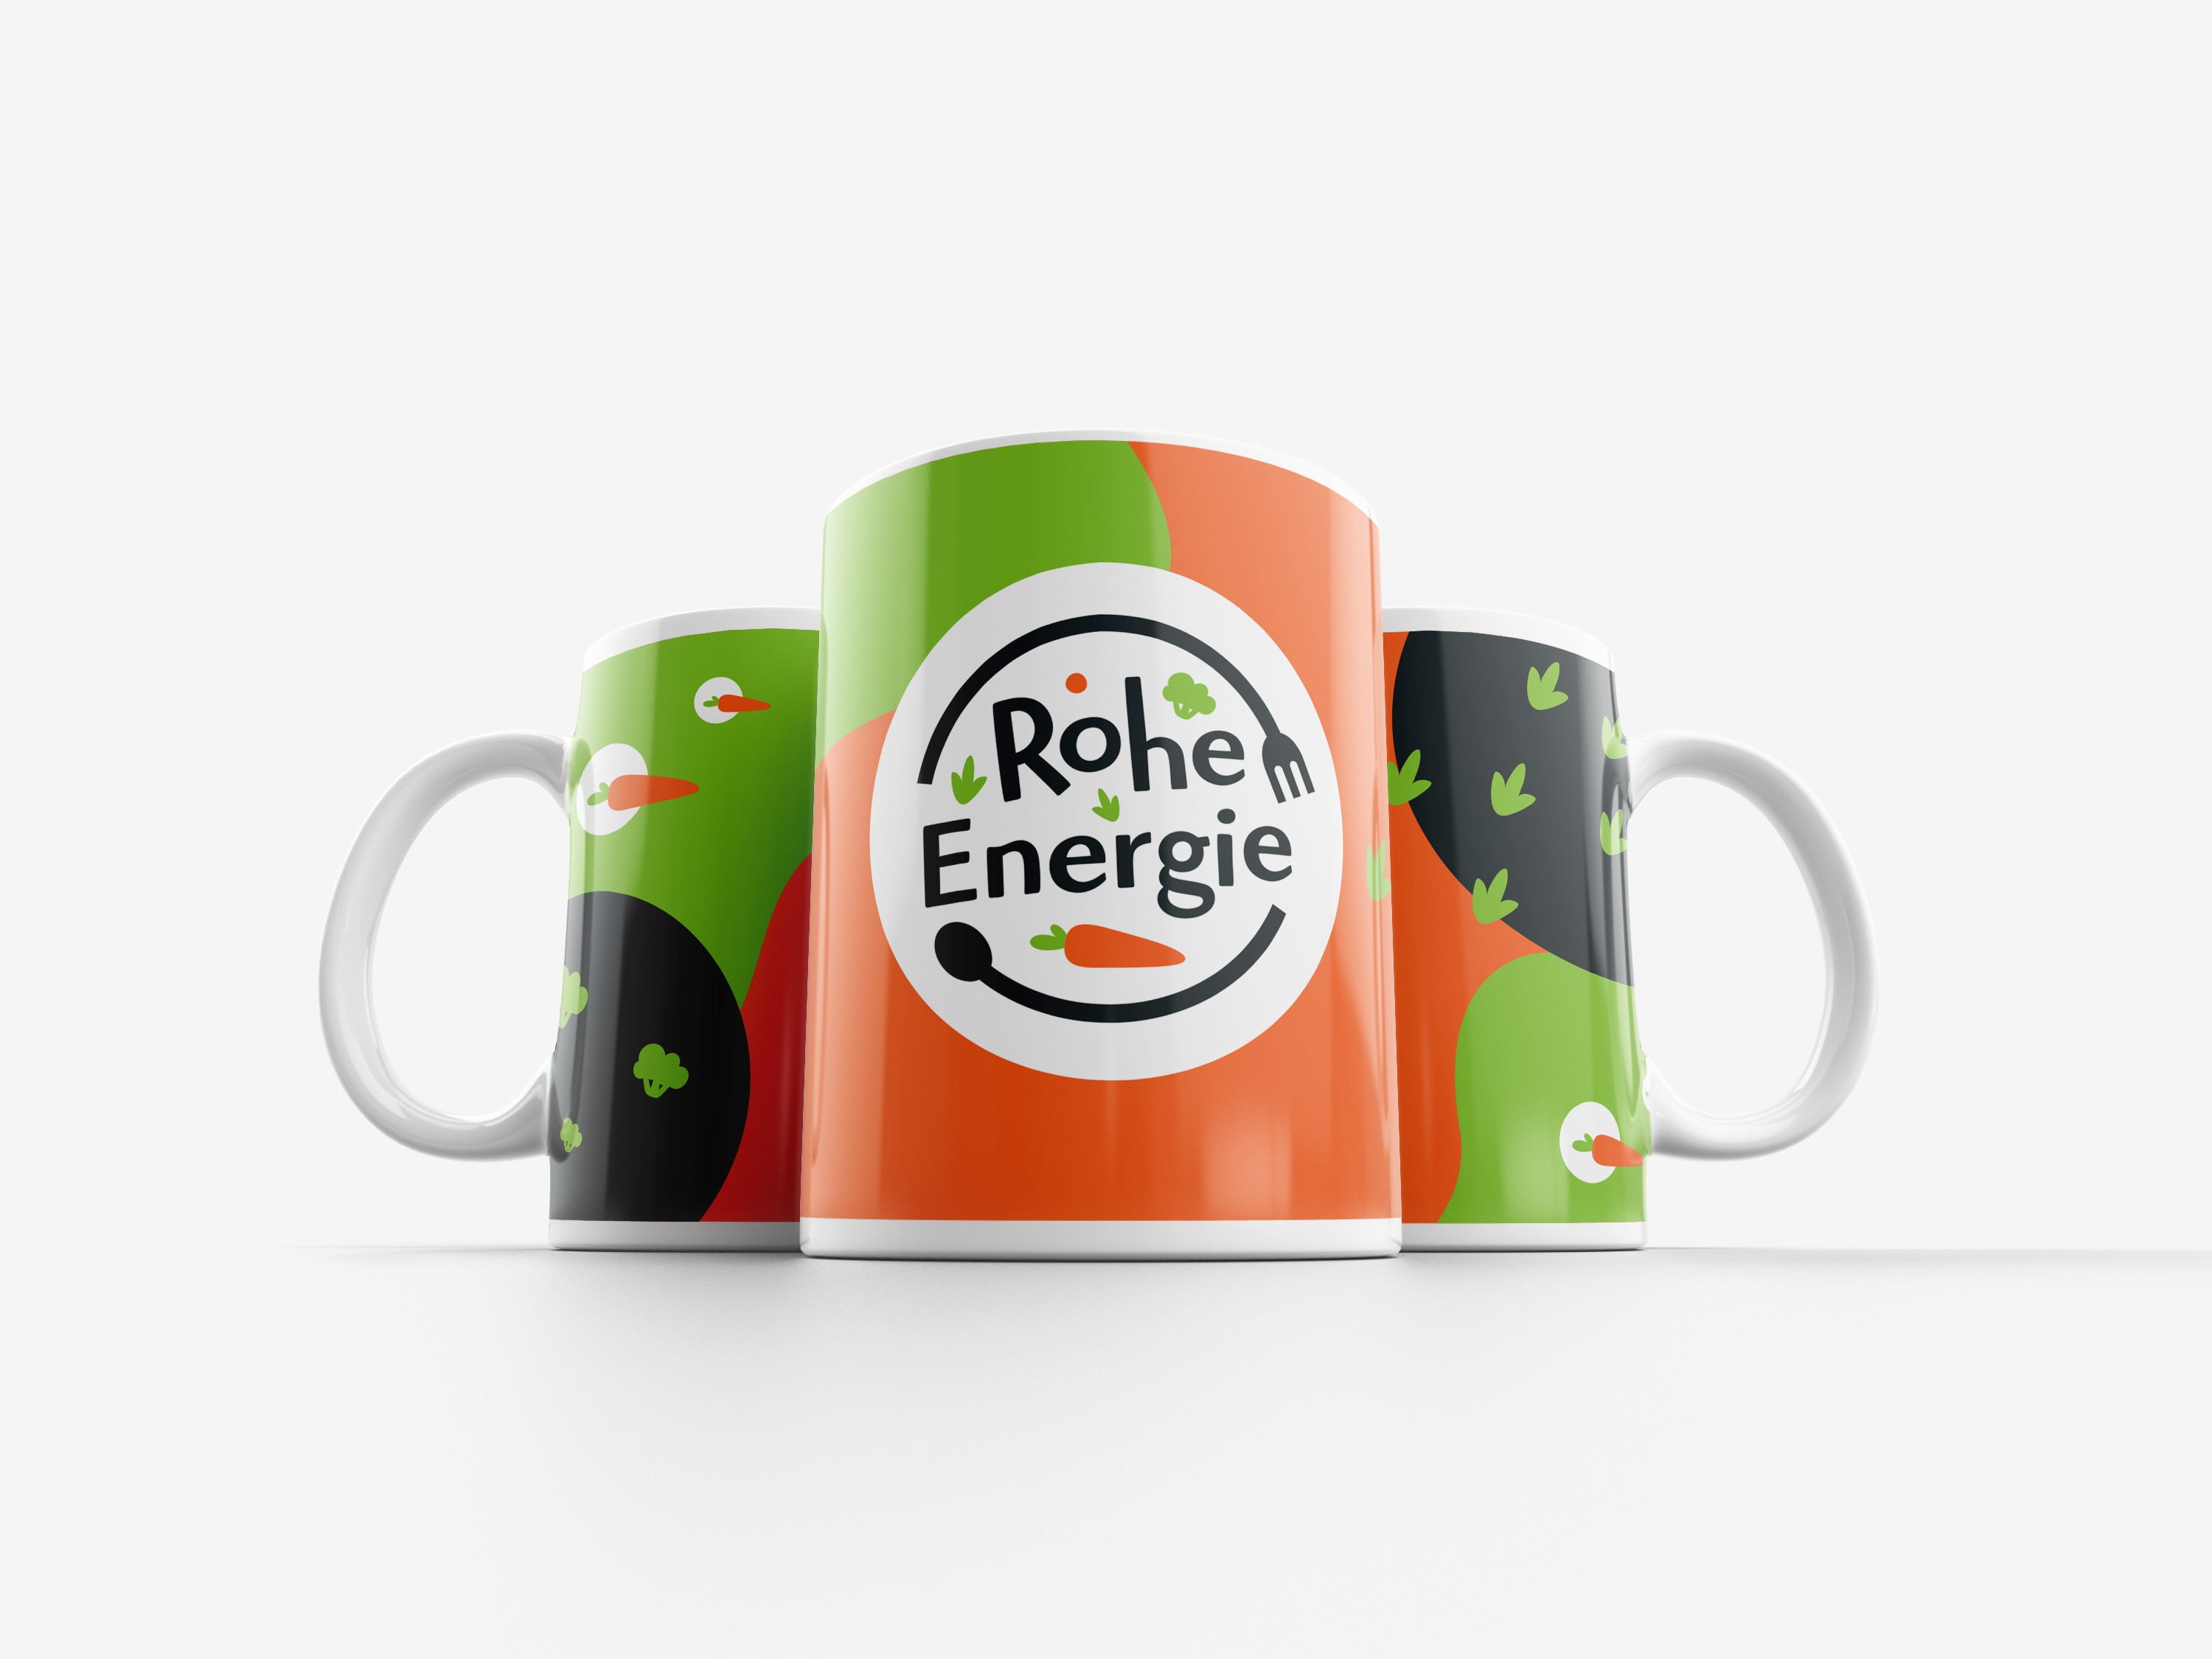 Design with our logo for a coffe cup